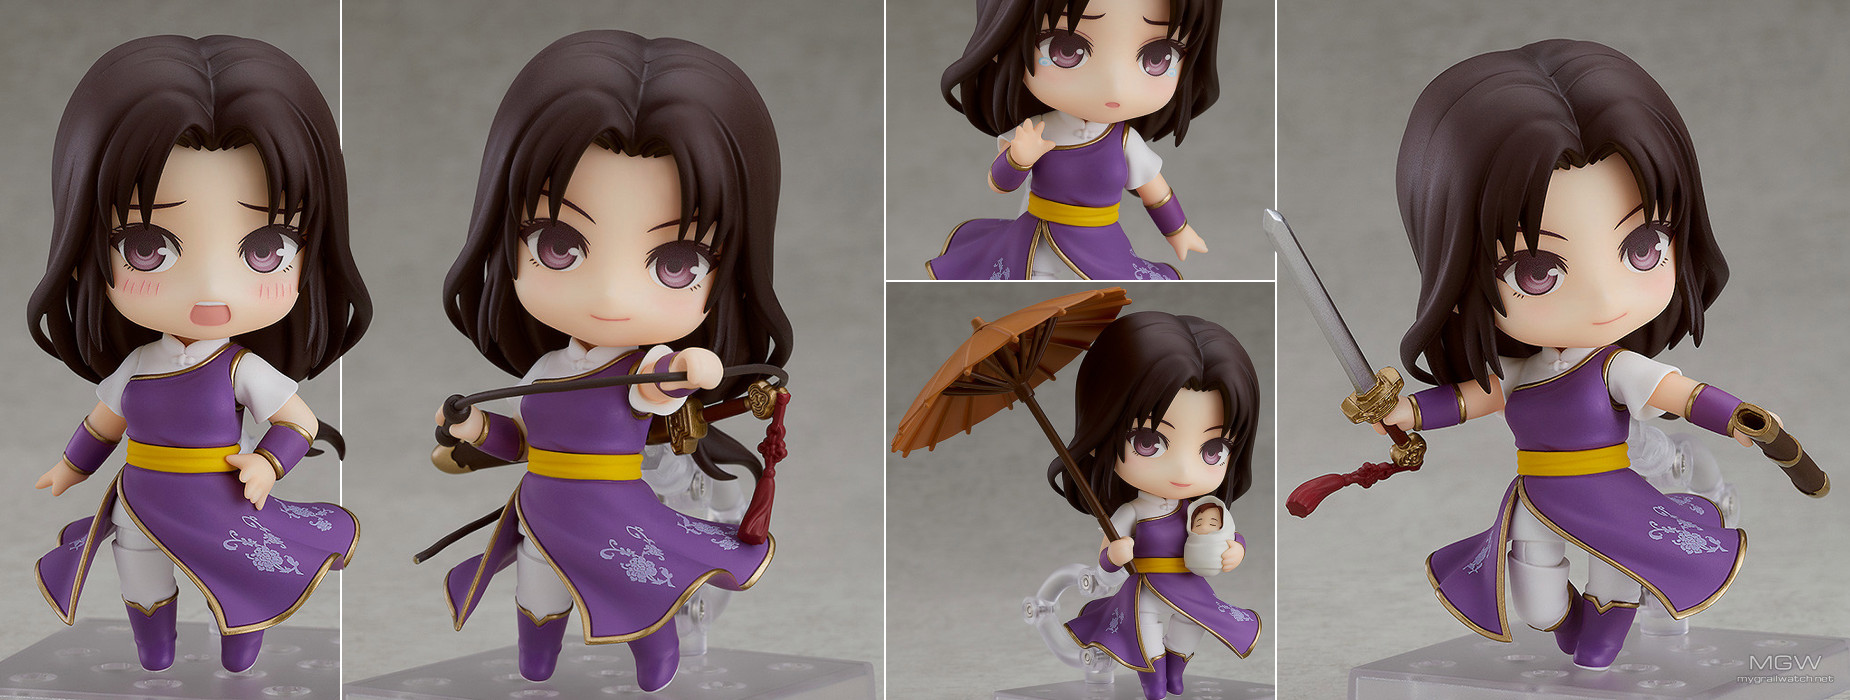 Nendoroid Lin Yueru DX Ver. by Good Smile Arts Shanghai from Chinese Paladin